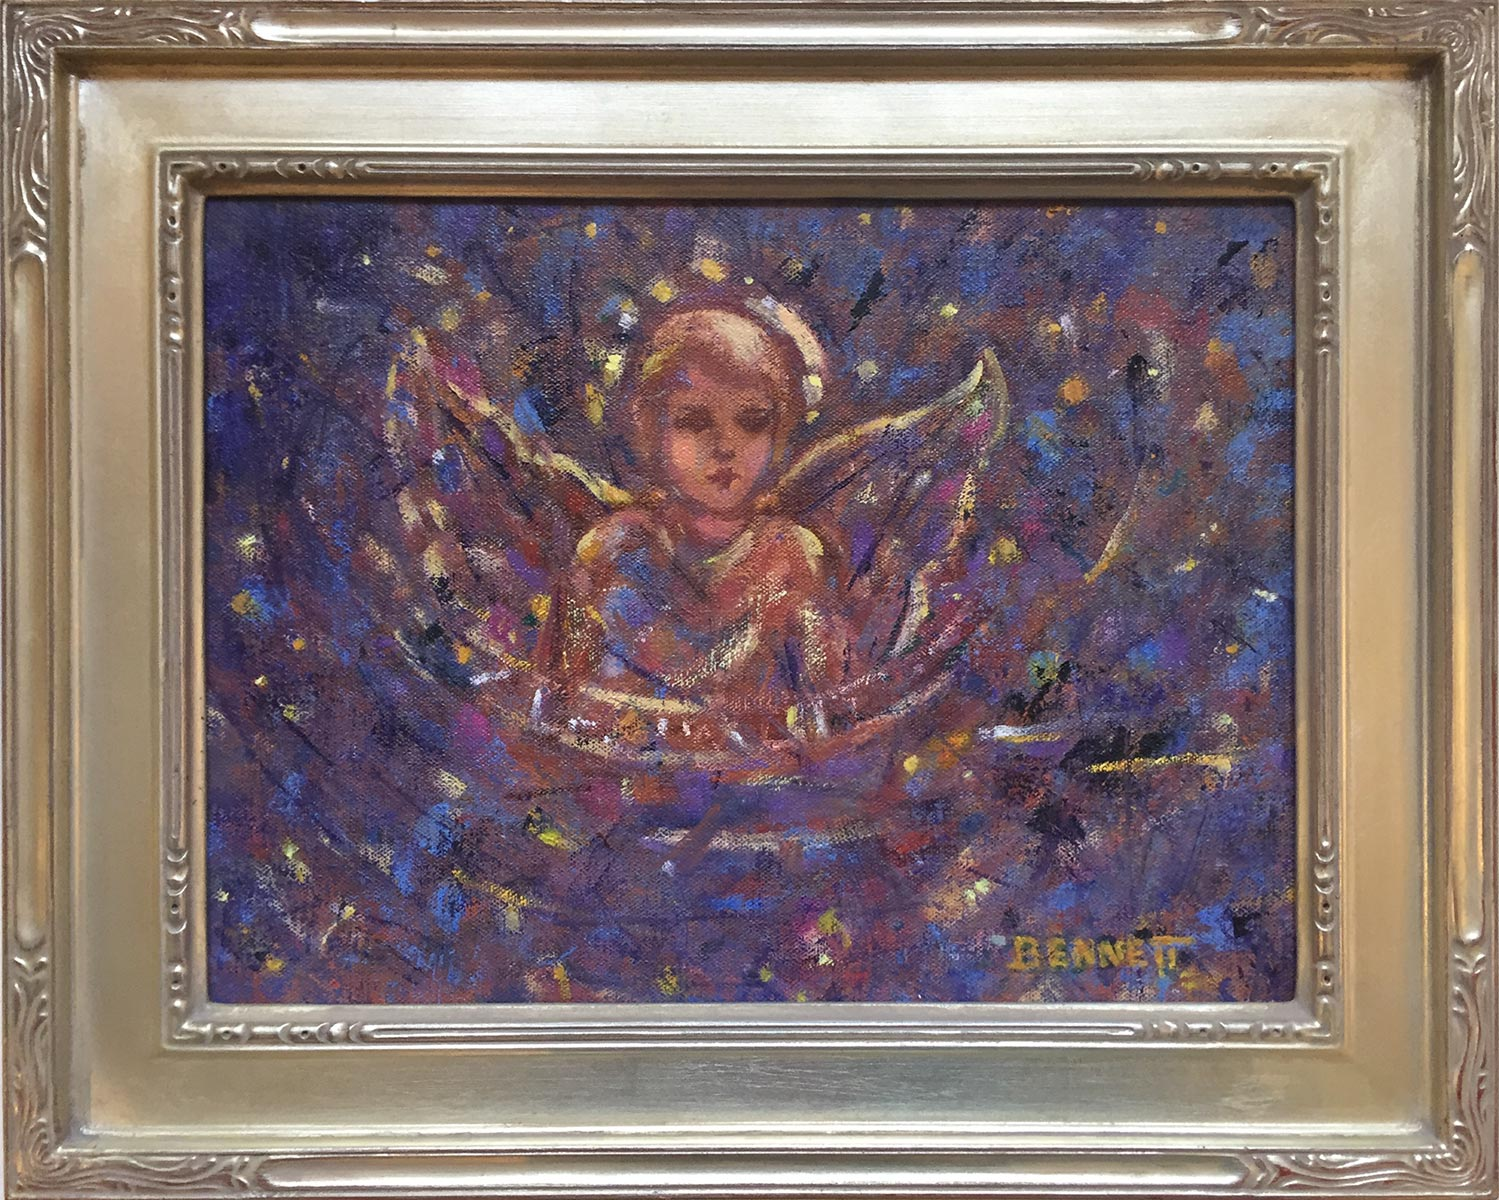 Child of Hope, by Sue Bennett